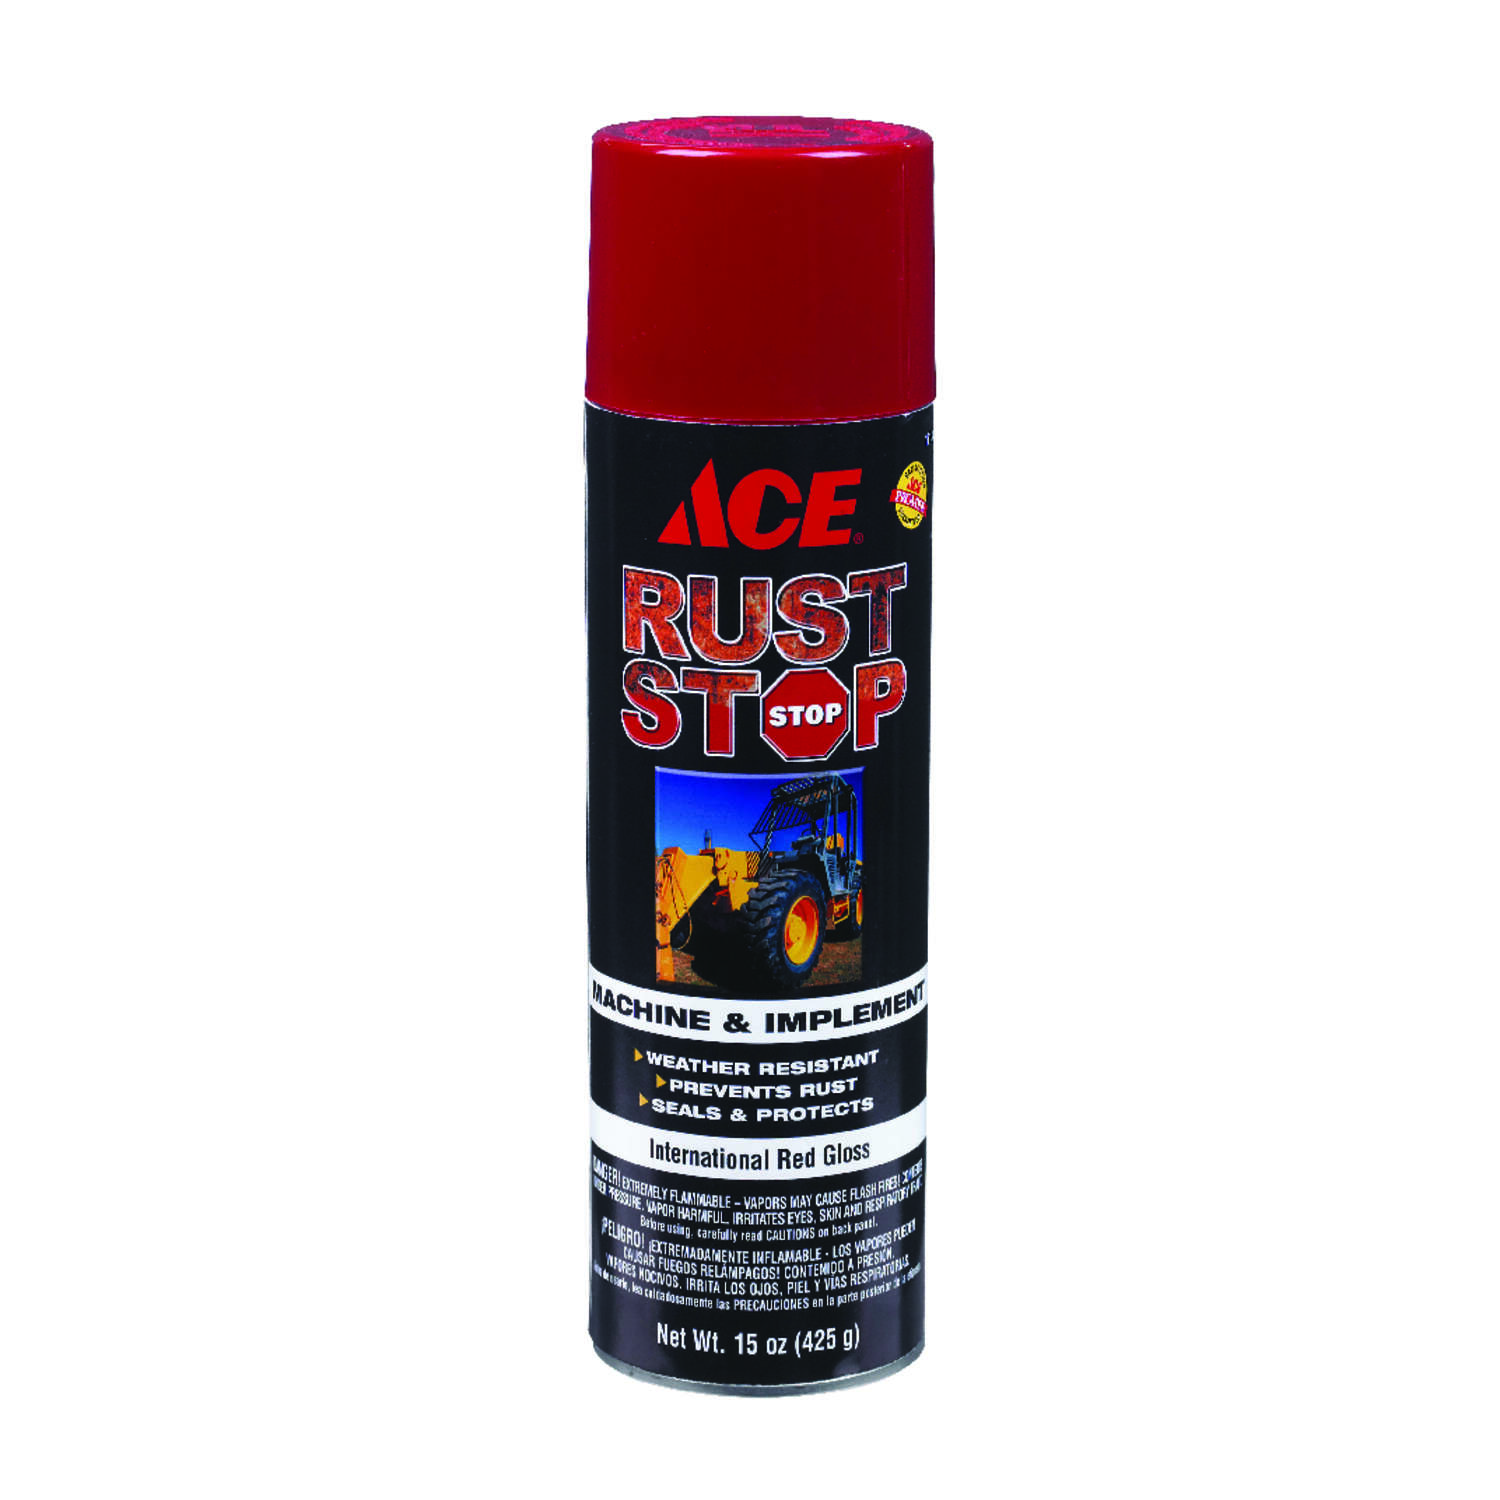 Ace  Rust Stop  Gloss  International Red  15 oz. Machine And Implement Enamel Spray Paint